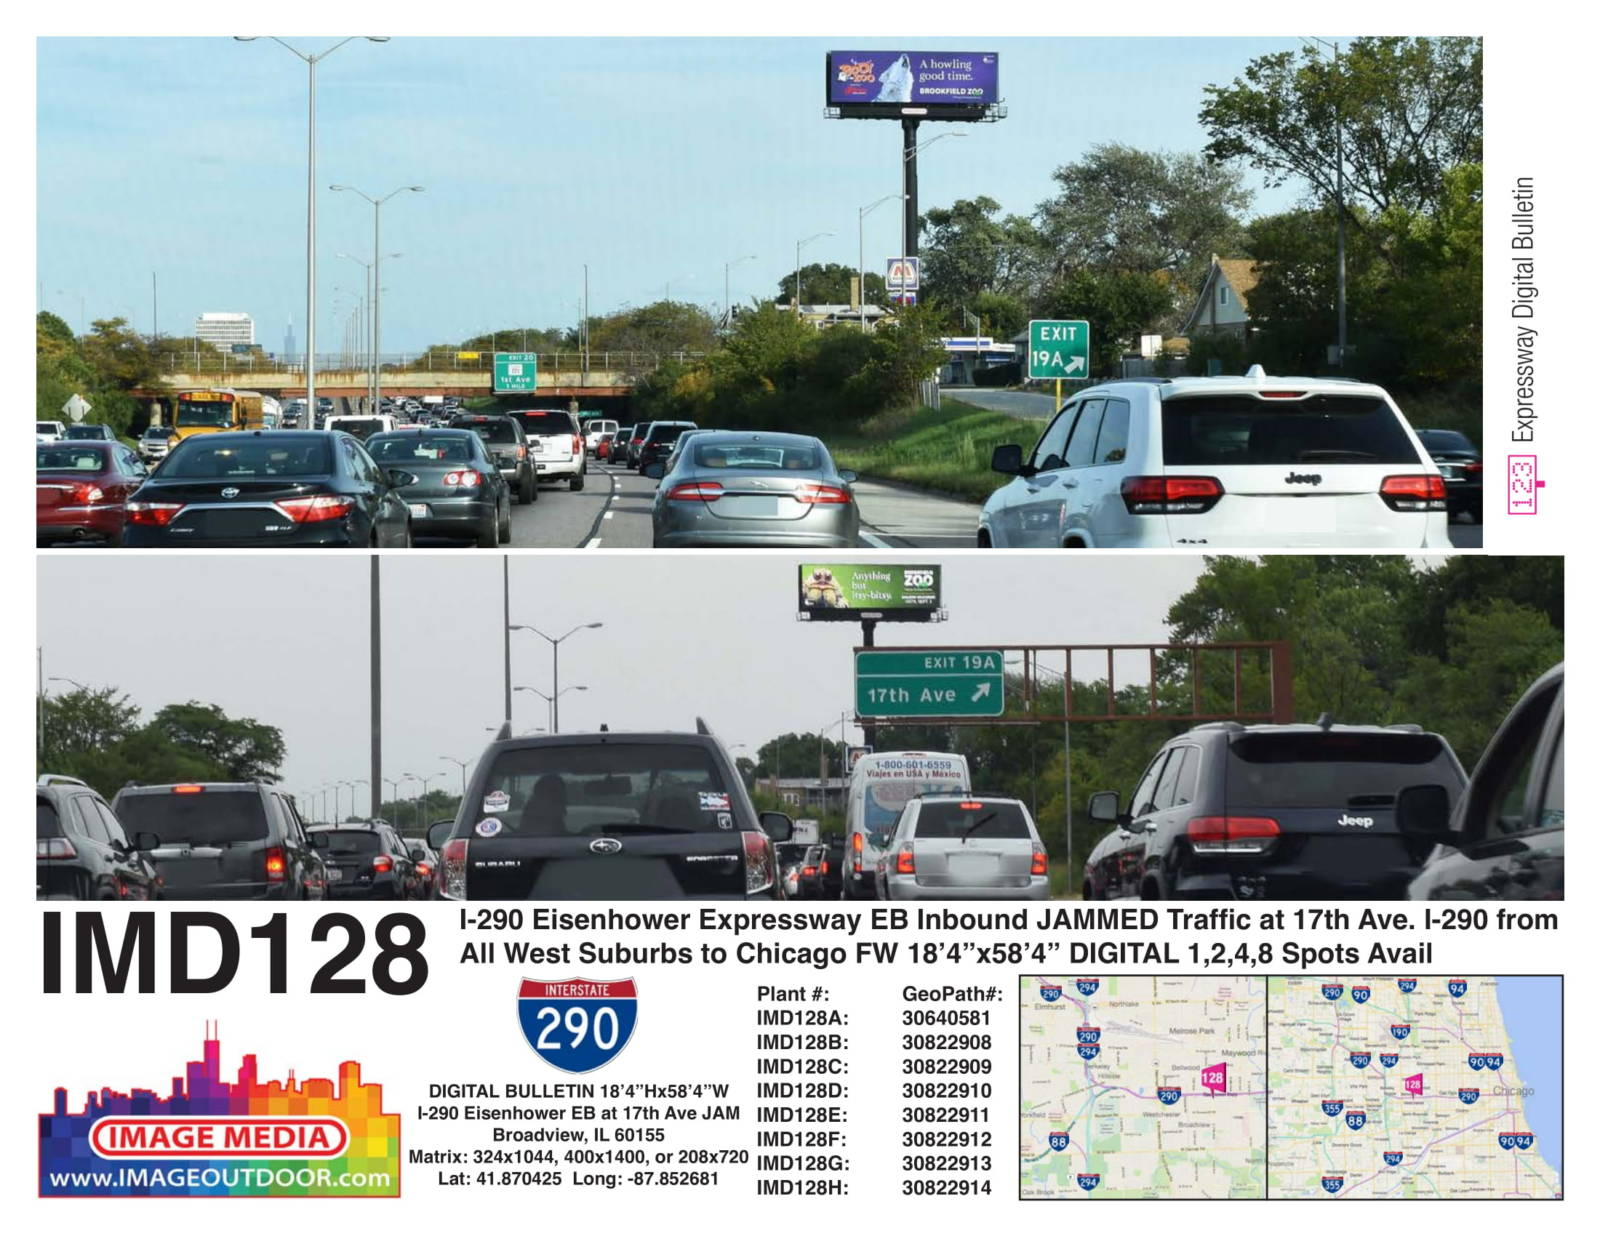 IMD128 - digital bulletin on I-290 eastbound inbound at 17th Ave.